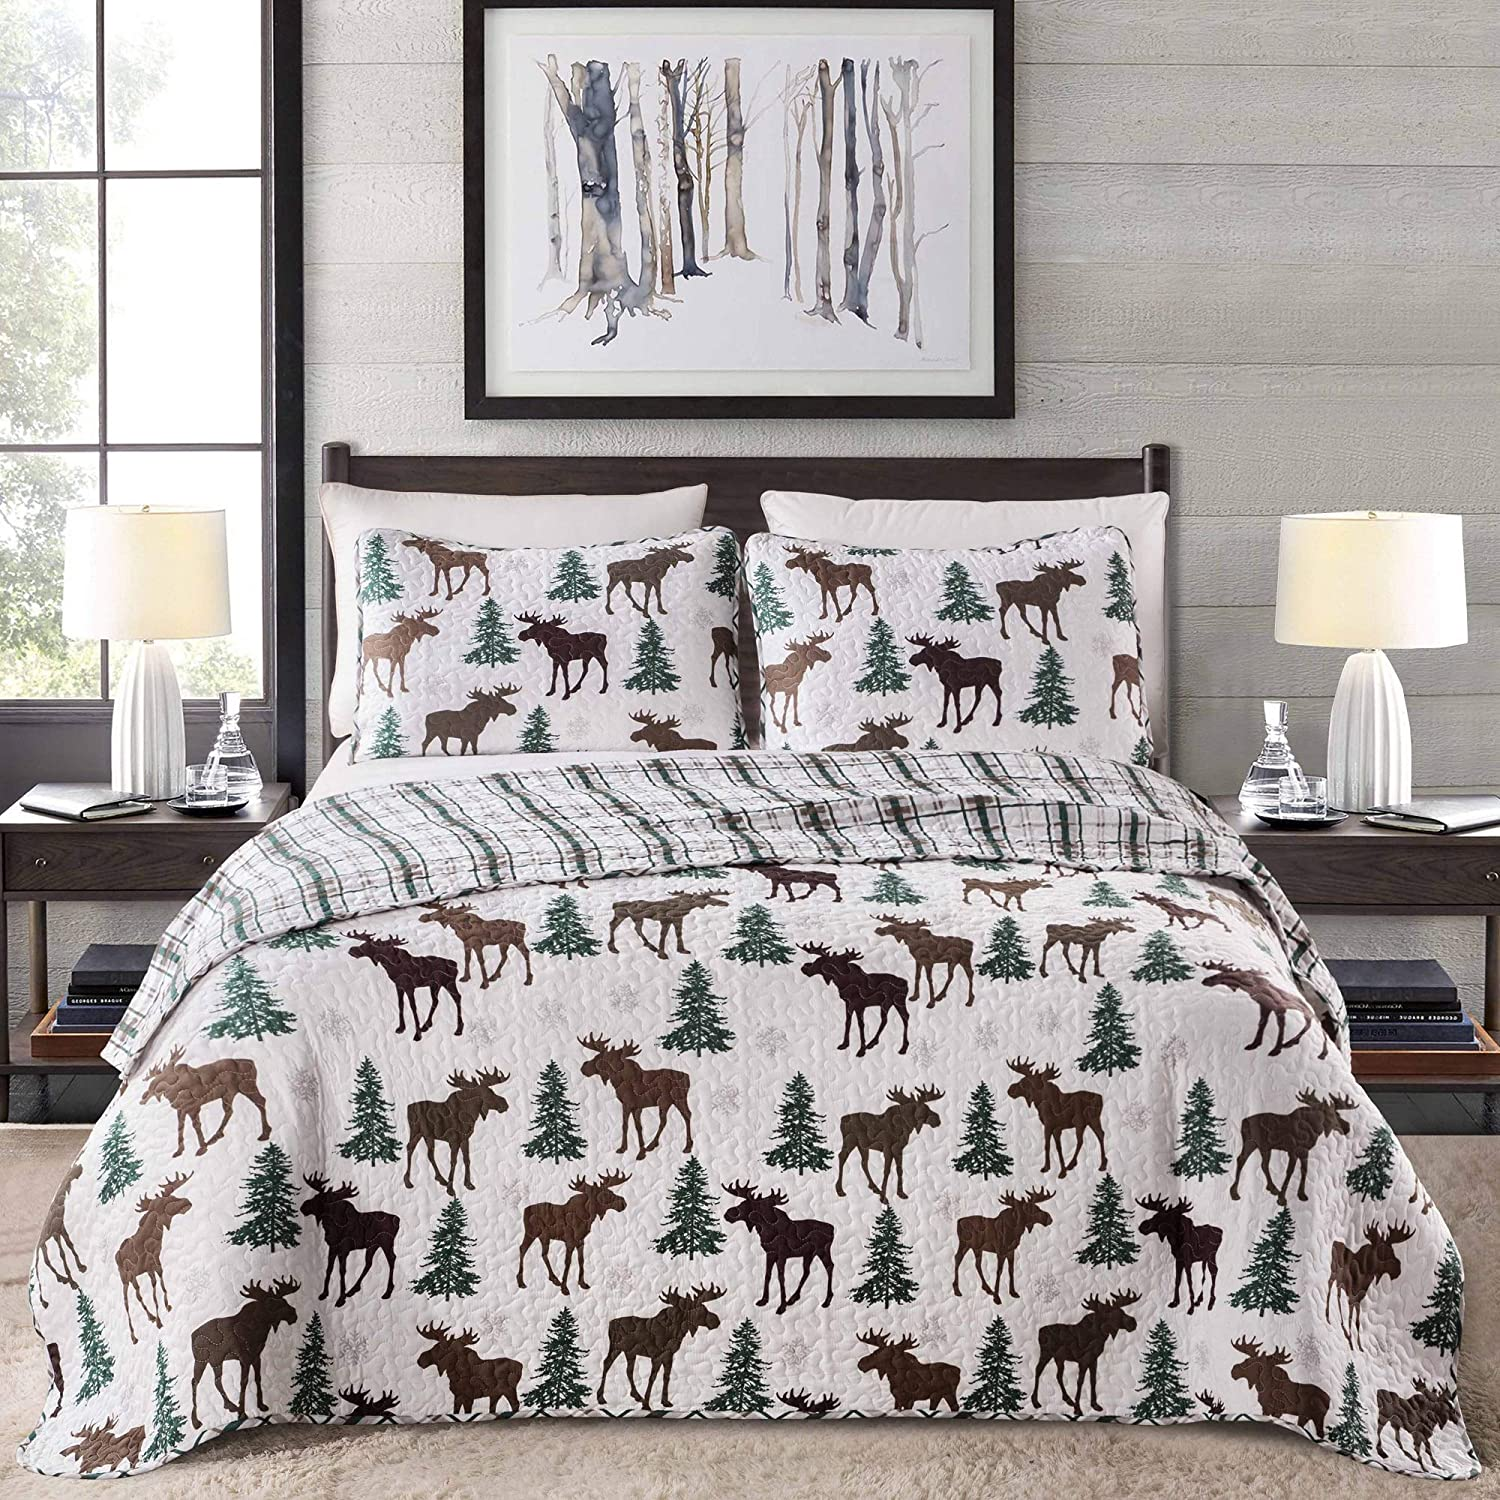 Great Bay Home Lodge Bedspread Full/Queen Size Quilt with 2 Shams. Cabin 3-Piece Reversible All Season Quilt Set